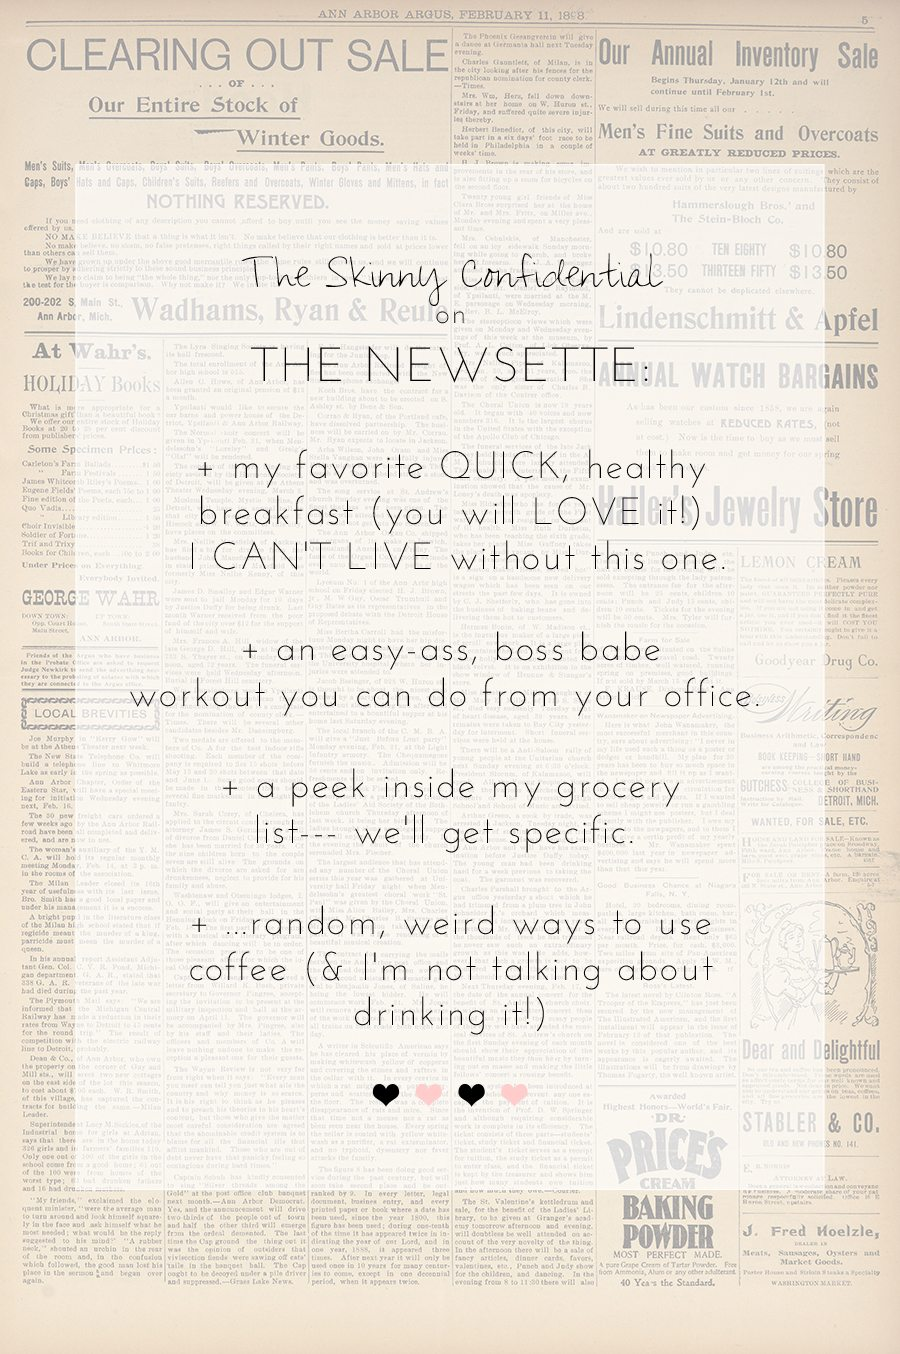 the skinny confidential on THE NEWSETTE | by the skinny confidential